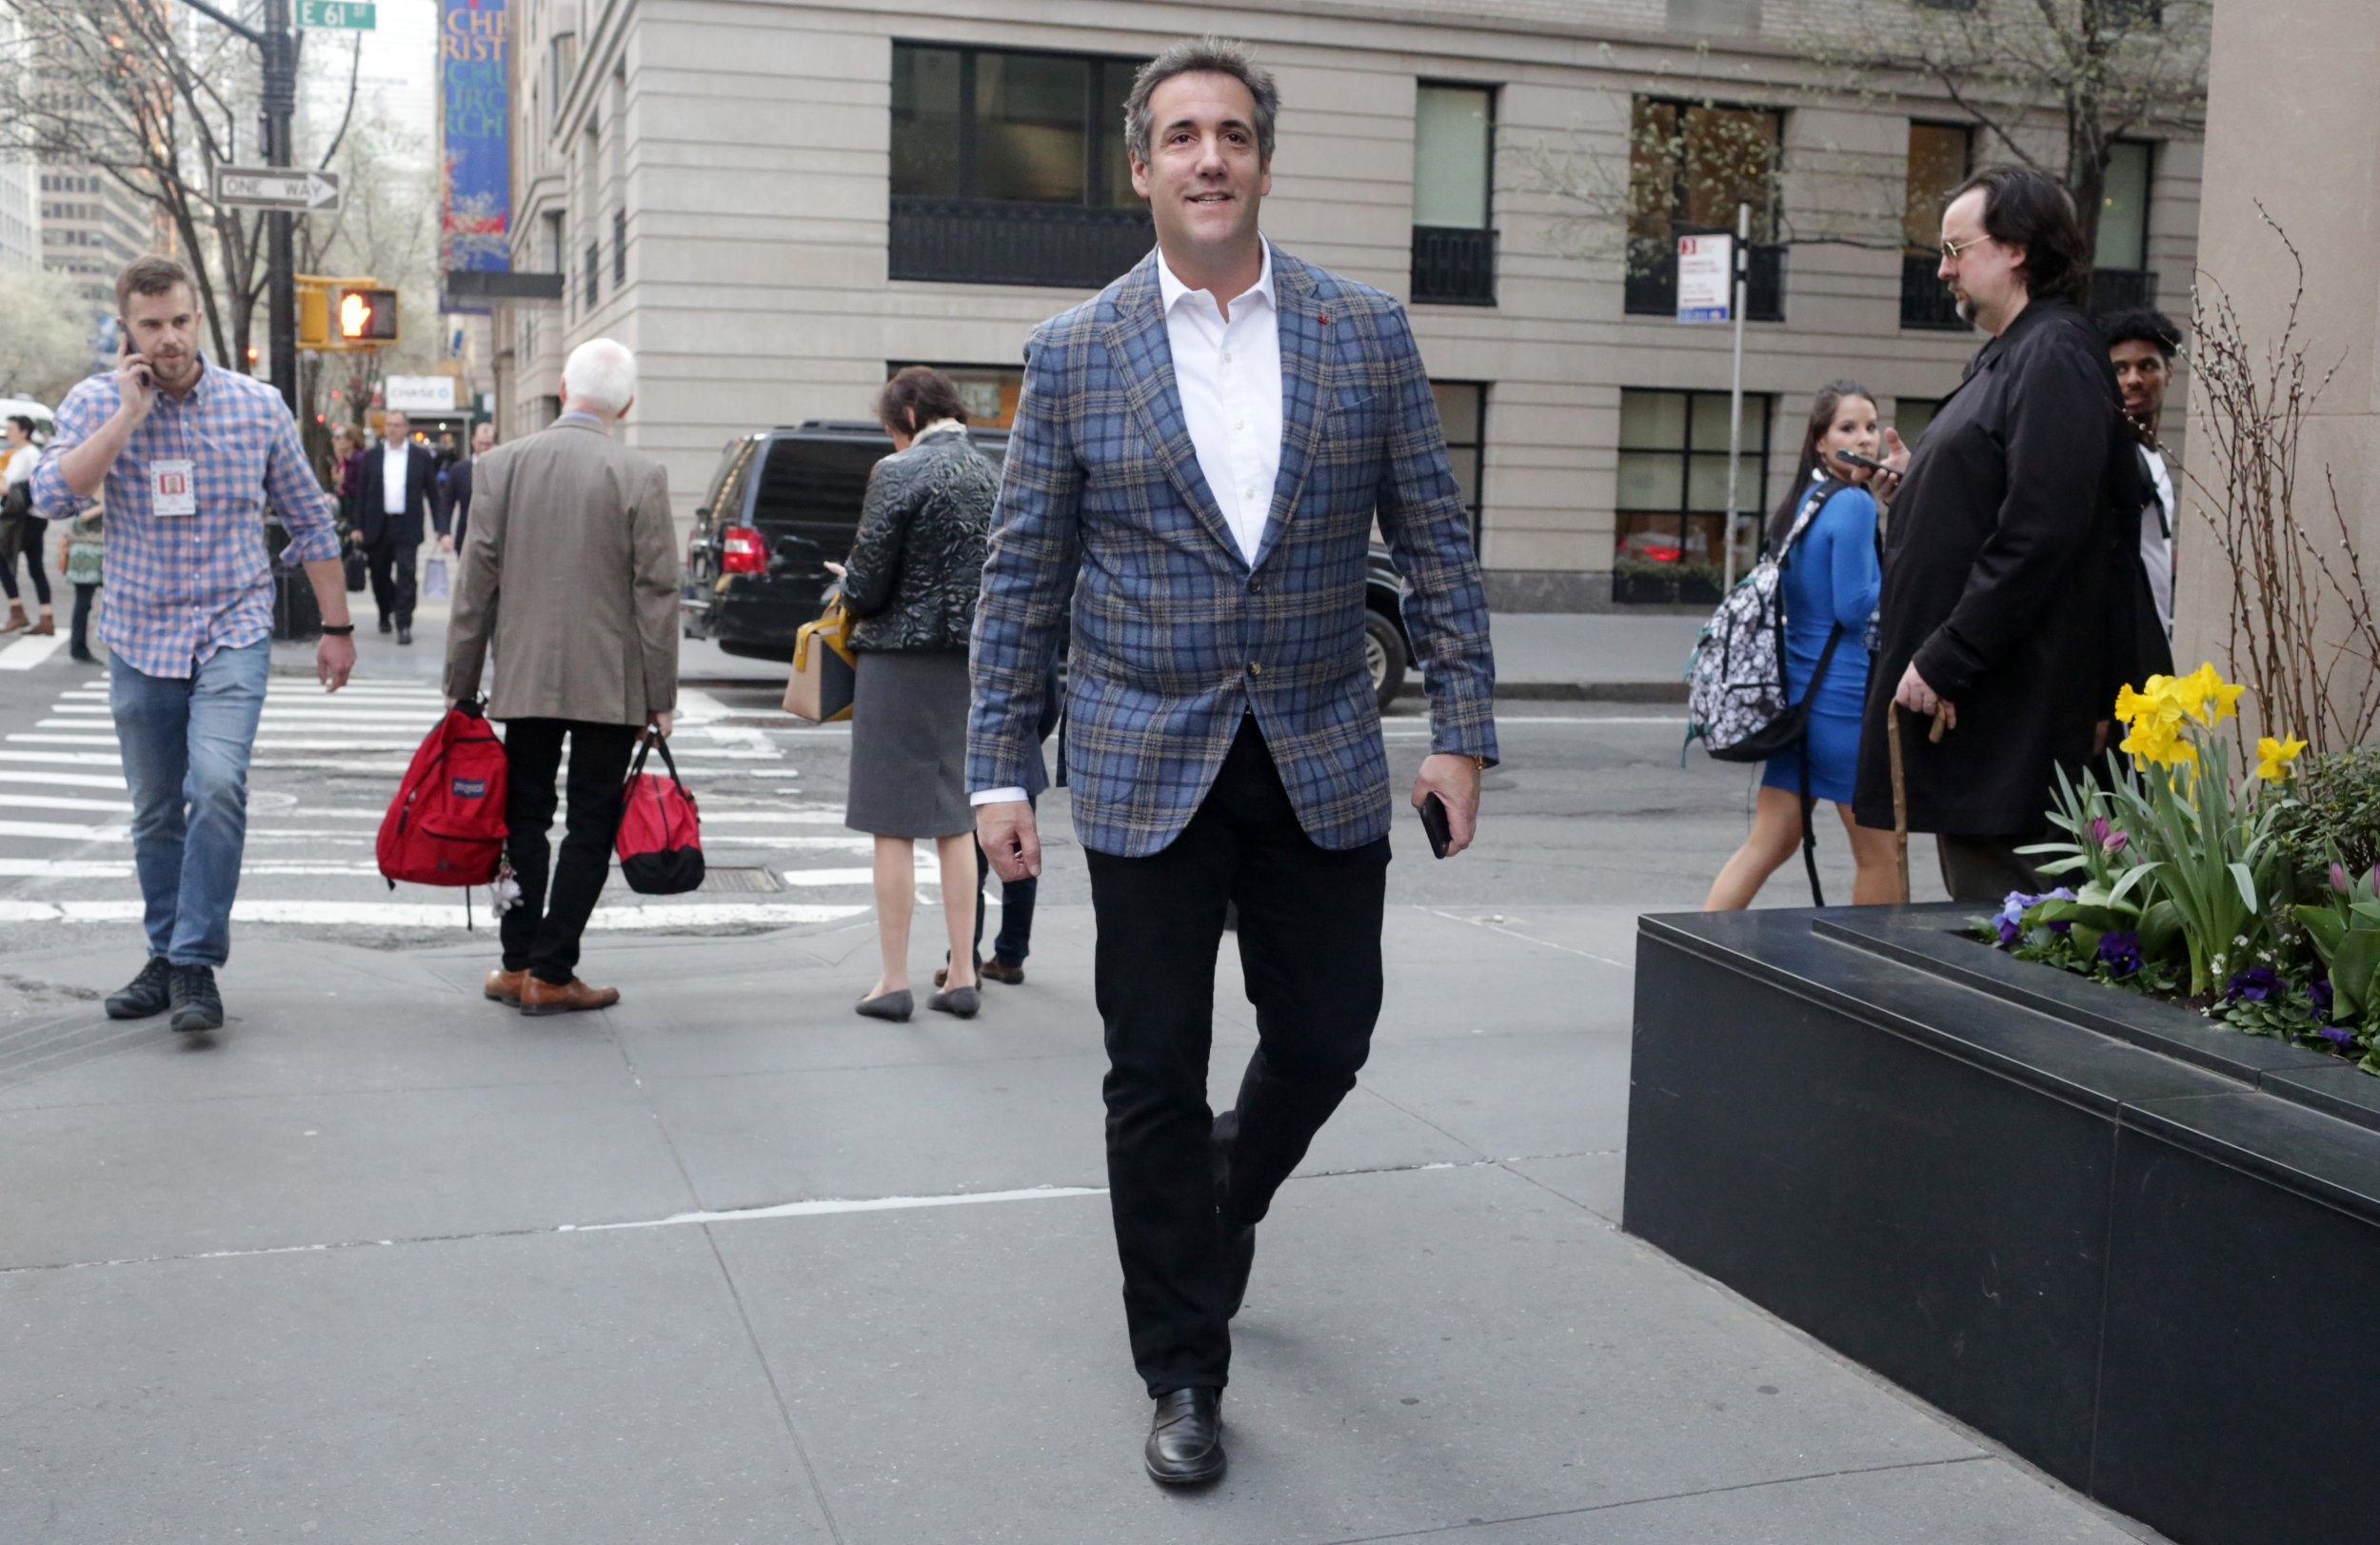 Ex-Trump Lawyer Michael Cohen Appears to Endorse Andrew Gillum, Who the President Labeled a 'Thief'